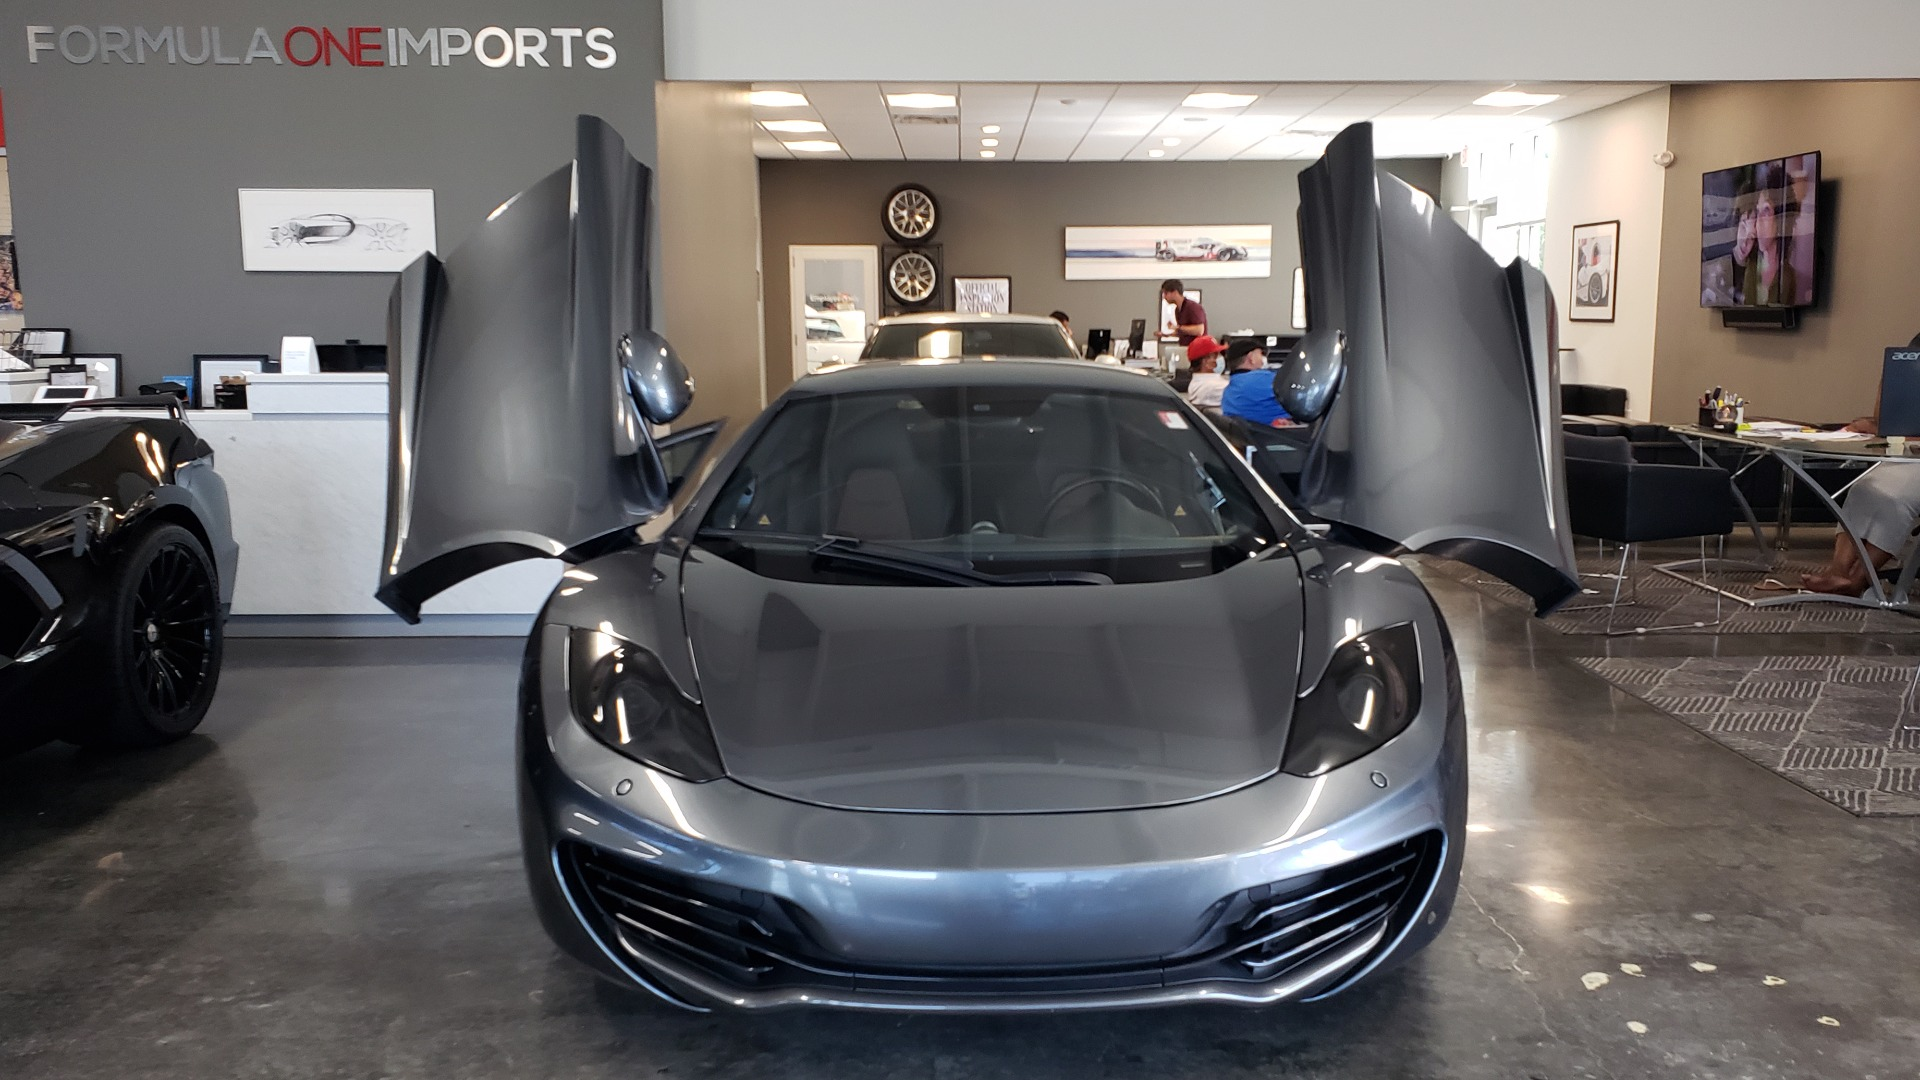 Used 2012 McLaren MP4-12C COUPE / 3.8 L V8 592HP / AUTO / NAV / CCB / LOW MILES for sale Sold at Formula Imports in Charlotte NC 28227 50